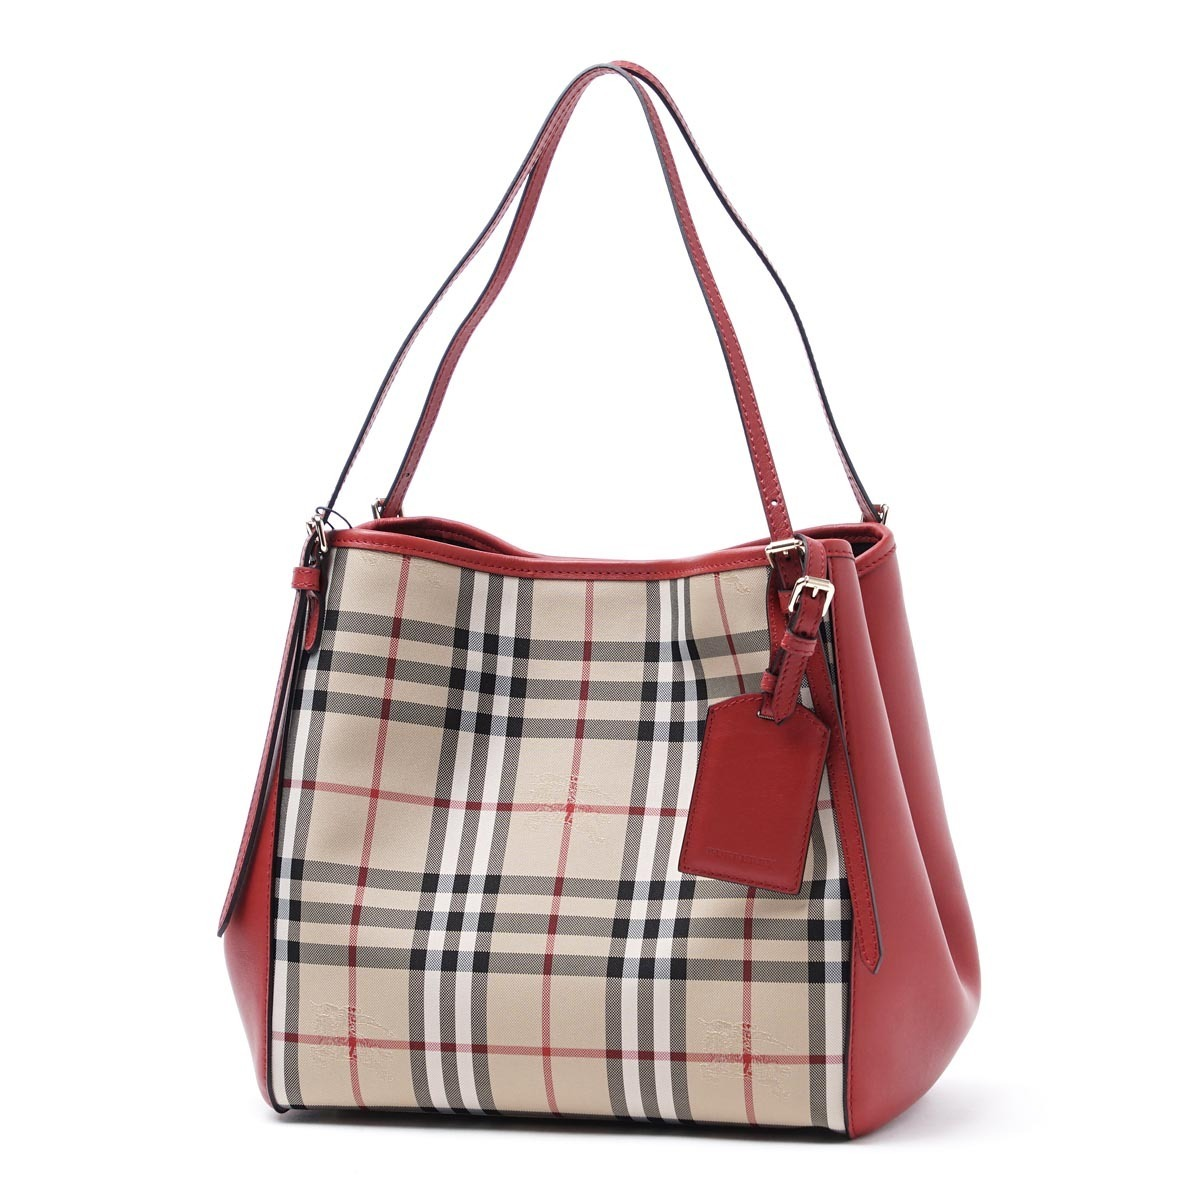 【BURBERRY】バッグ☆CANTER HONEY/PARADE RED★2016秋冬新作♪